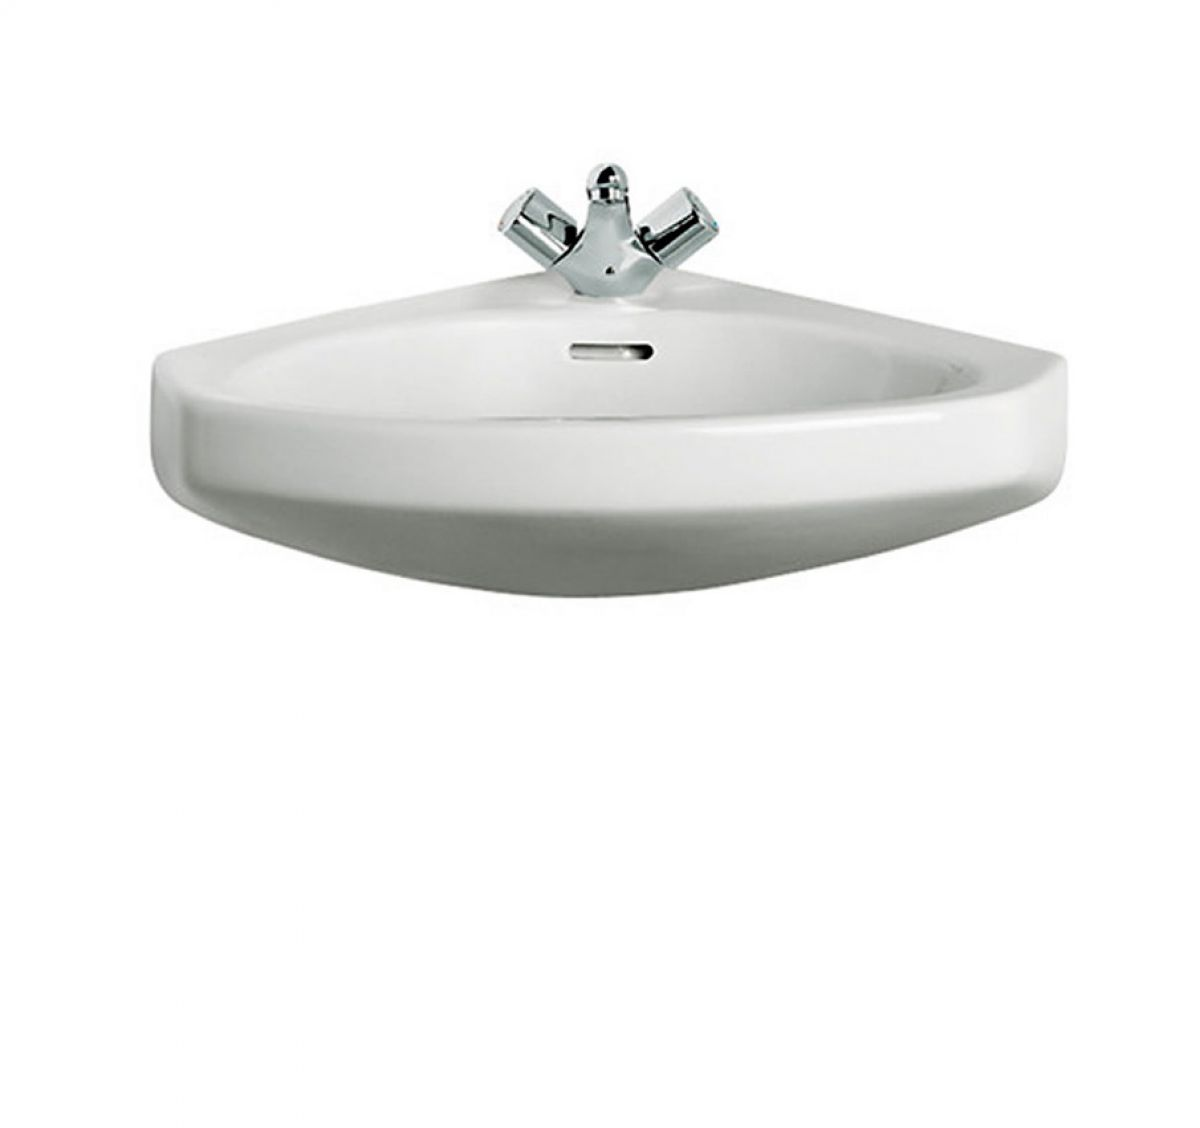 roca angular corner basin - Roca Wash Basin